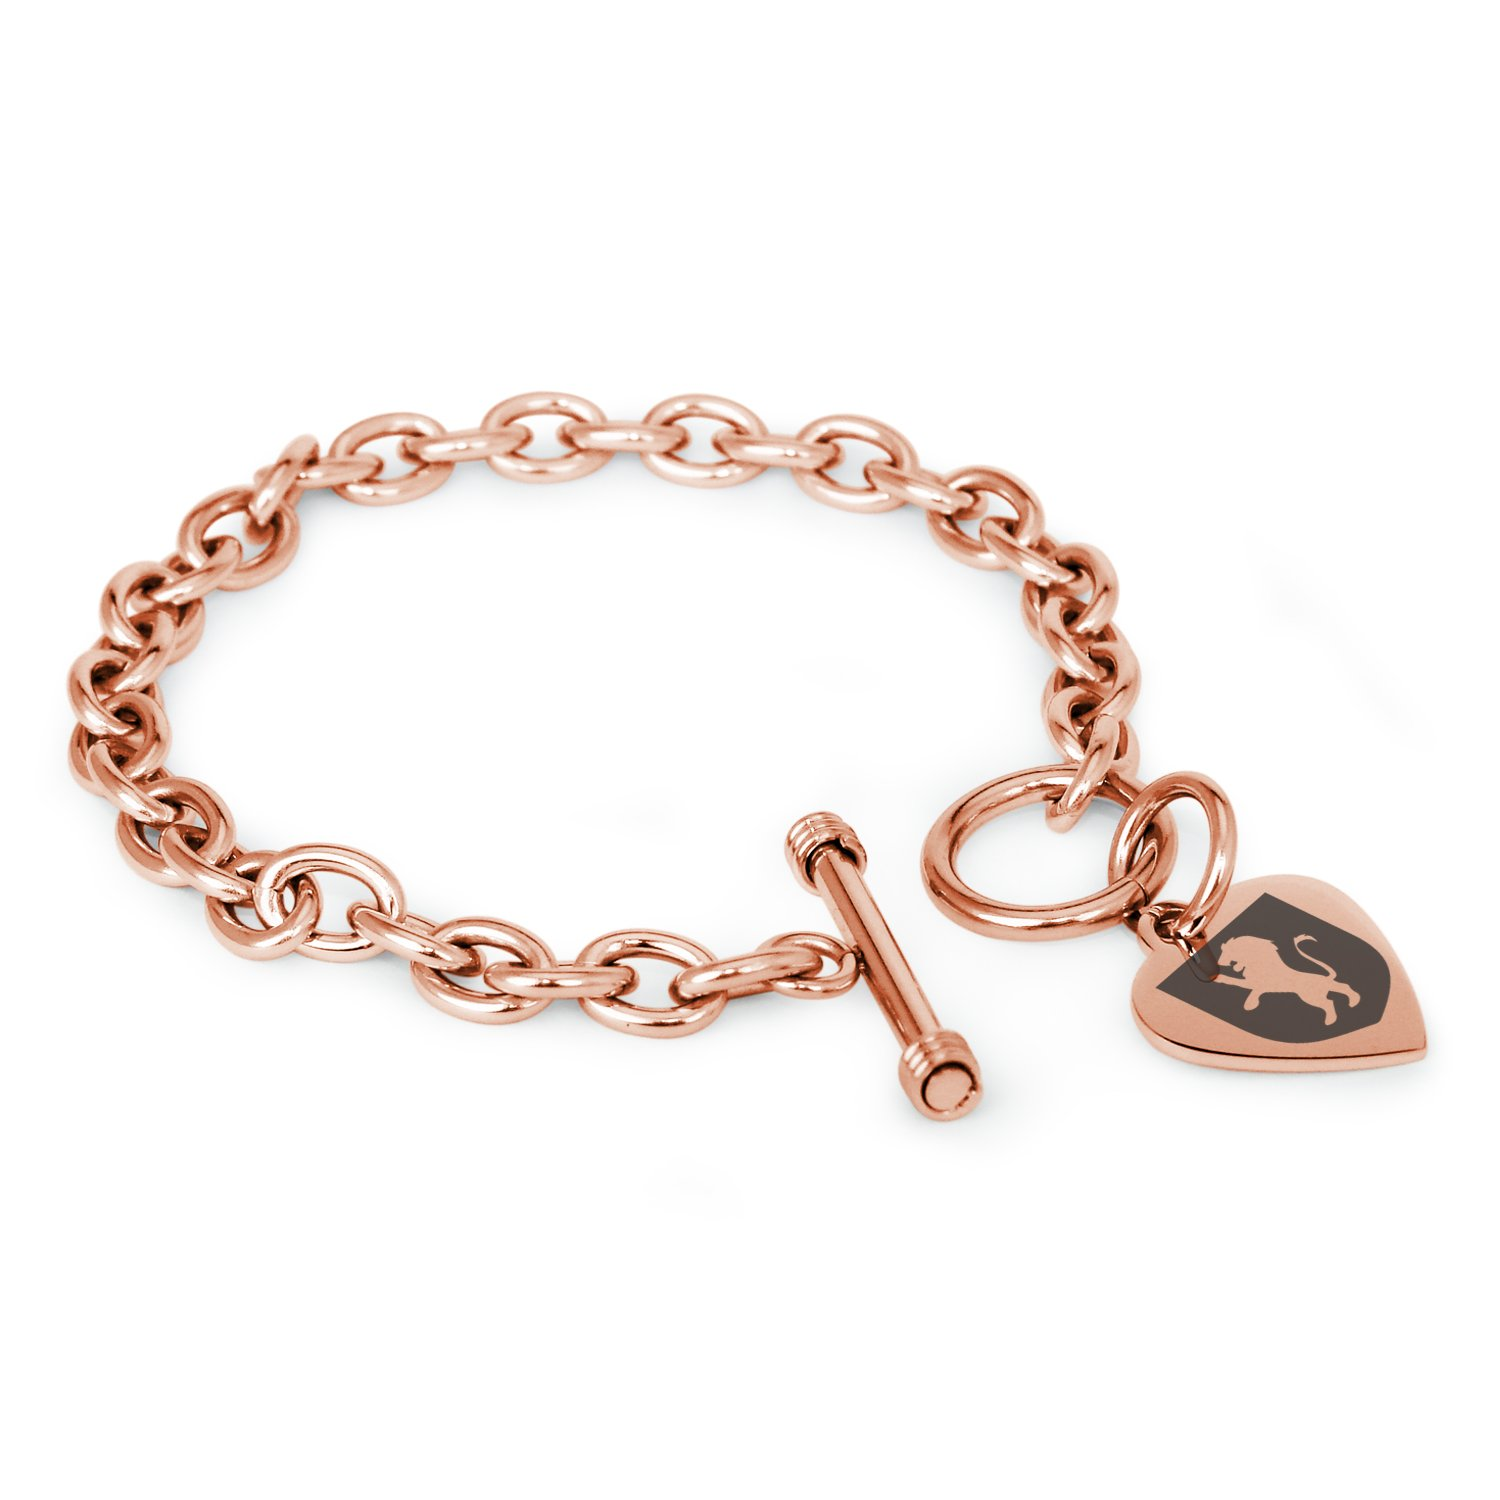 Rose Gold Plated Stainless Steel Lion Courage Coat of Arms Shield Symbols Heart Charm, Bracelet Only by Tioneer (Image #1)